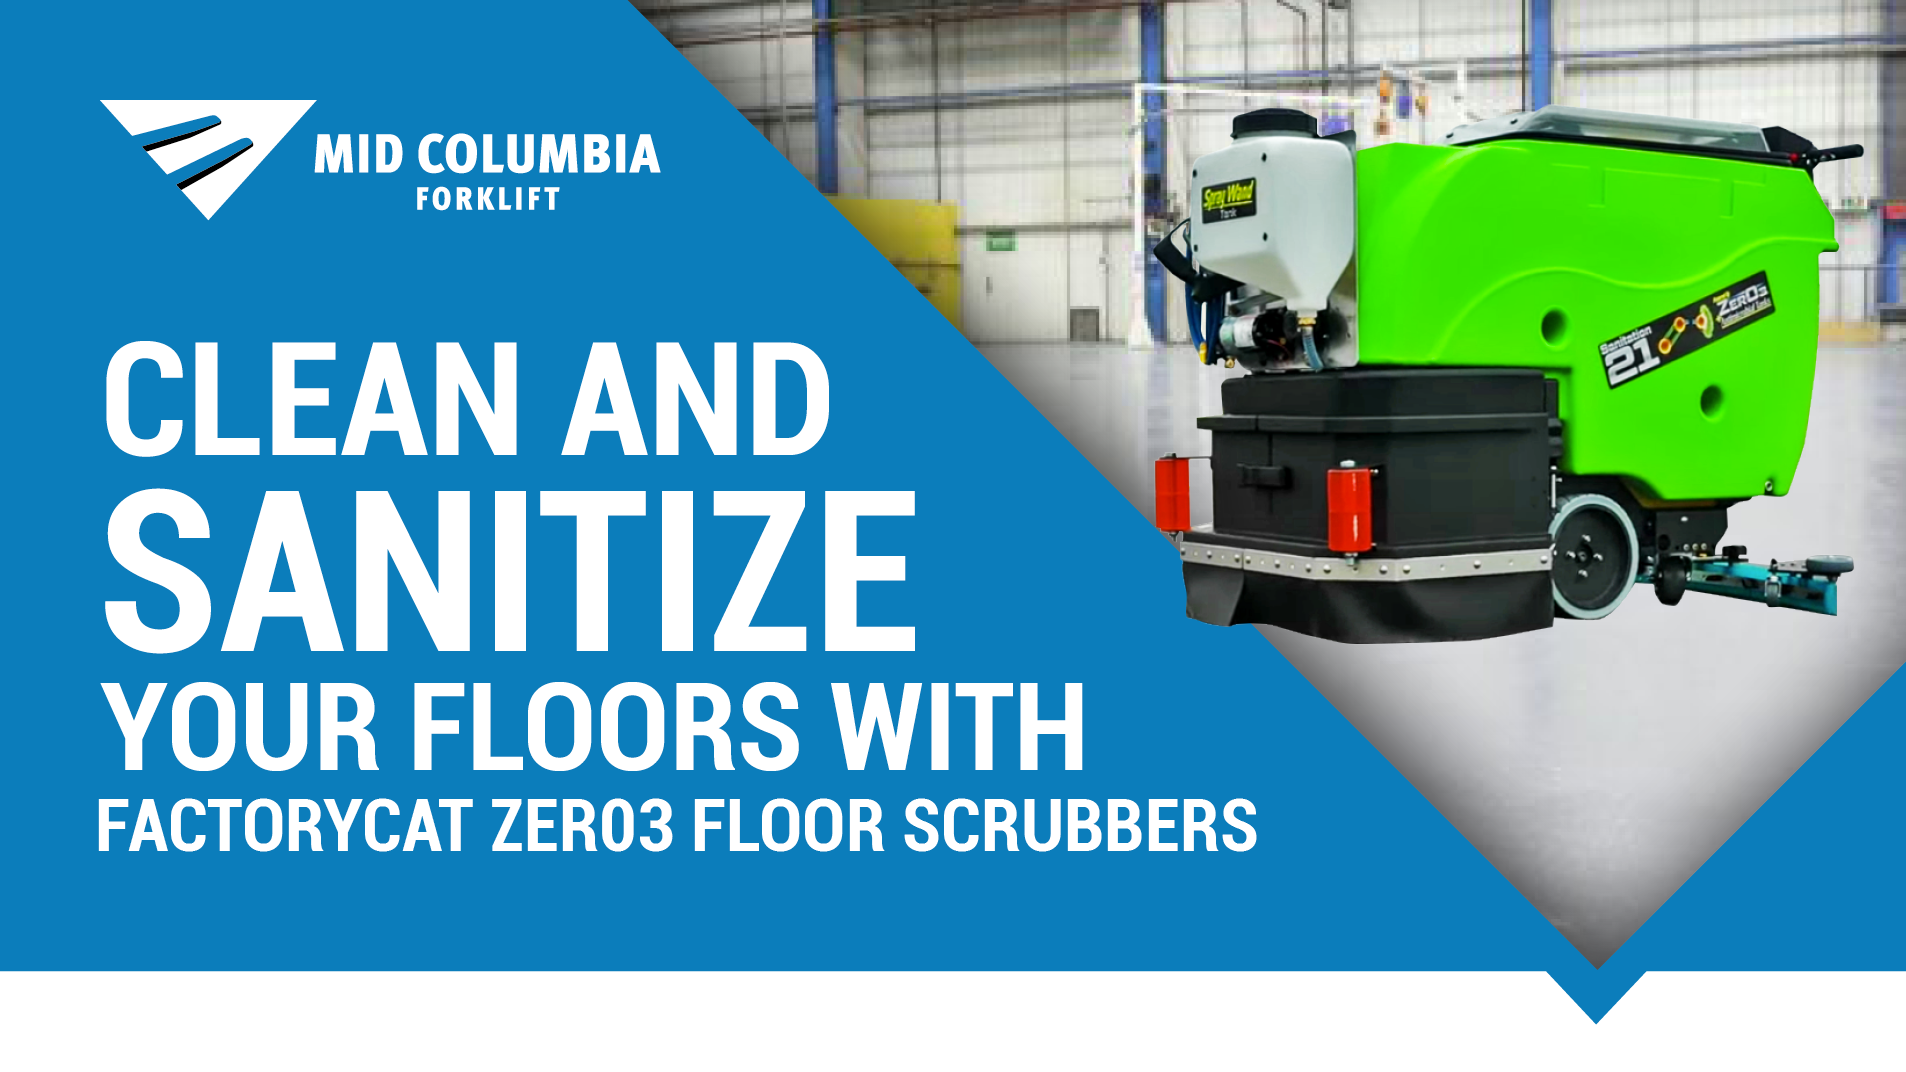 Clean and Sanitize Your Floors with FactoryCat Zer03 Floor Scrubbers